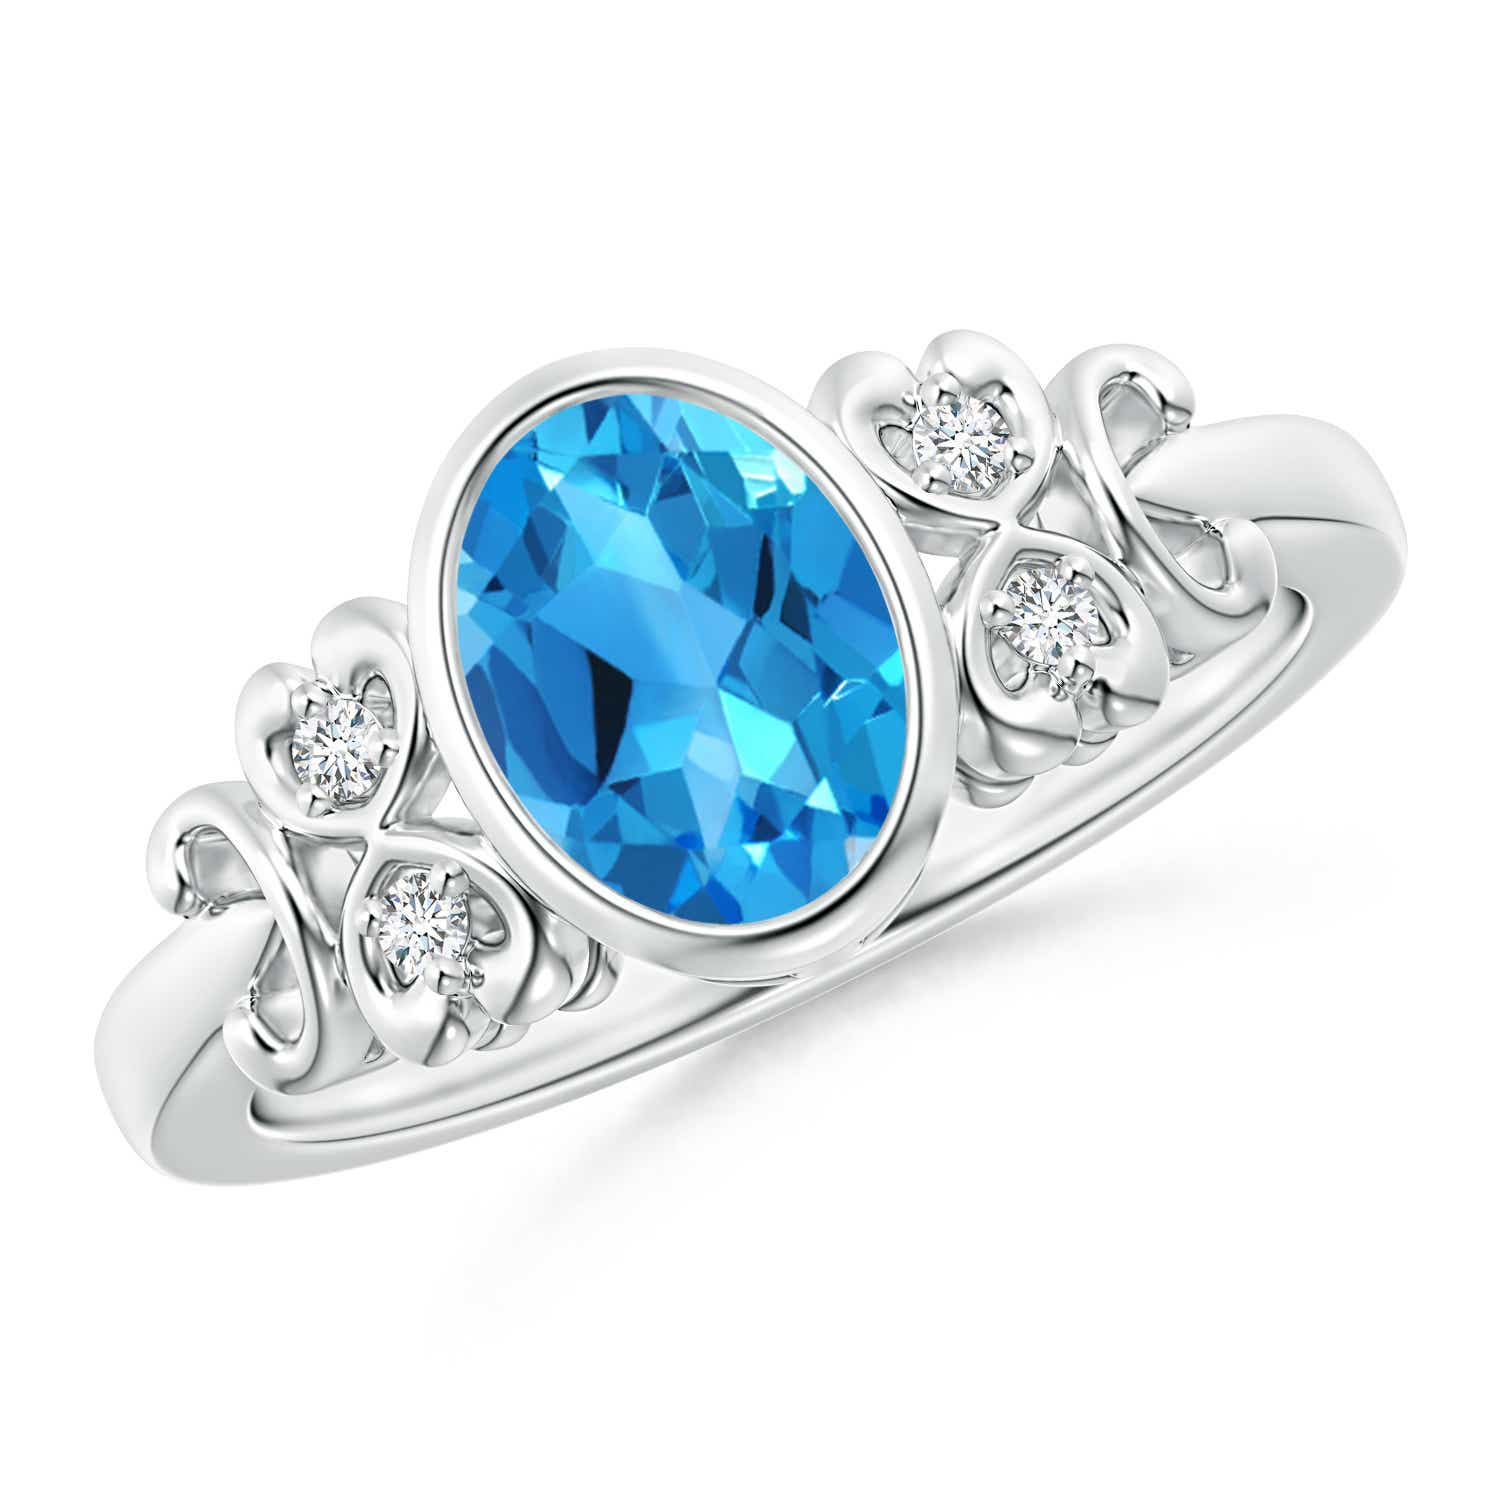 Vintage Oval Swiss Blue Topaz Bezel Solitaire Ring with Diamonds - Angara.com